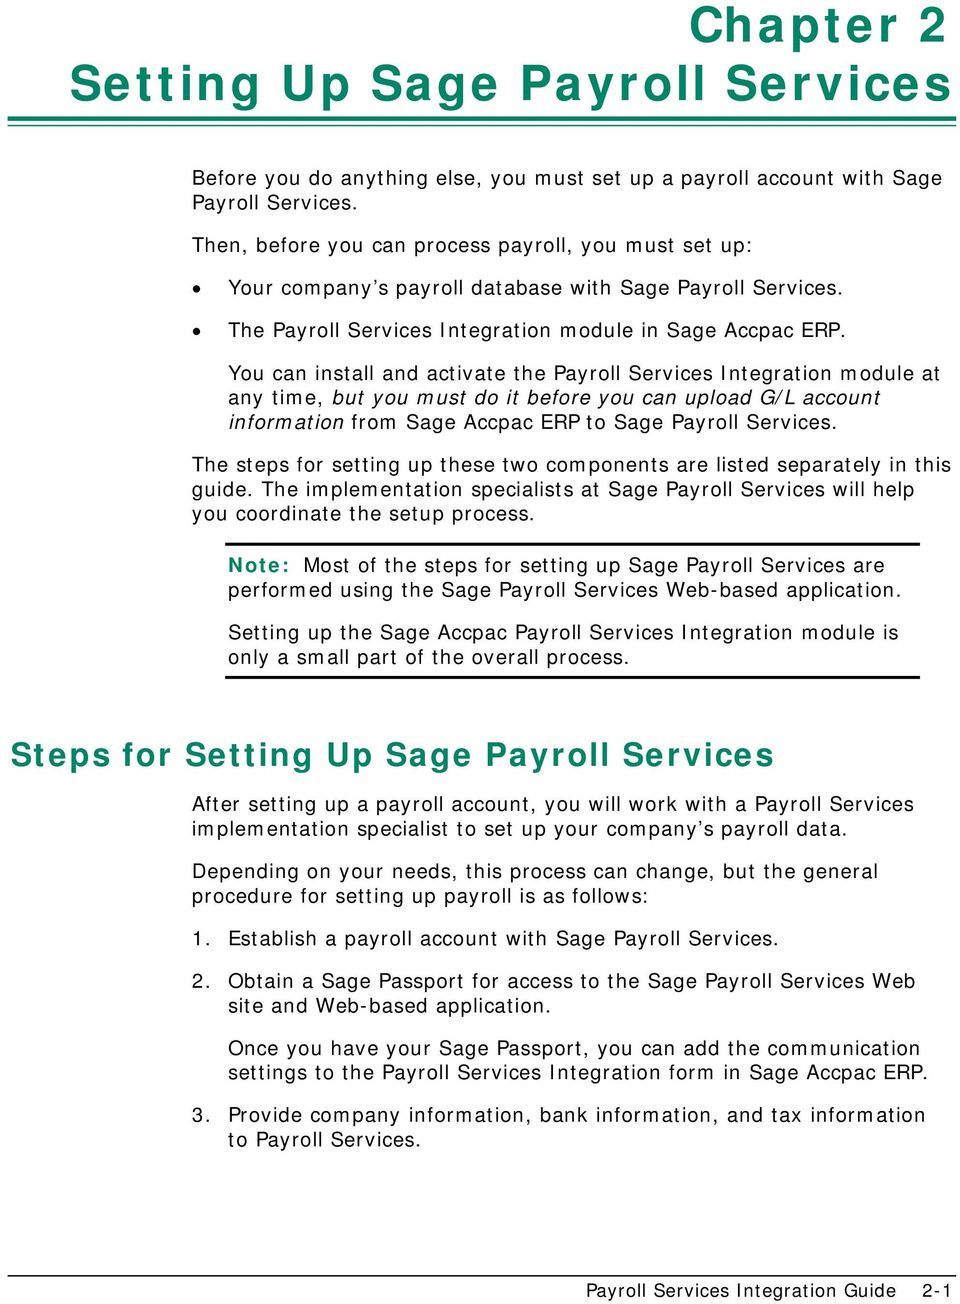 You can install and activate the Payroll Services Integration module at any time, but you must do it before you can upload G/L account information from Sage Accpac ERP to Sage Payroll Services.